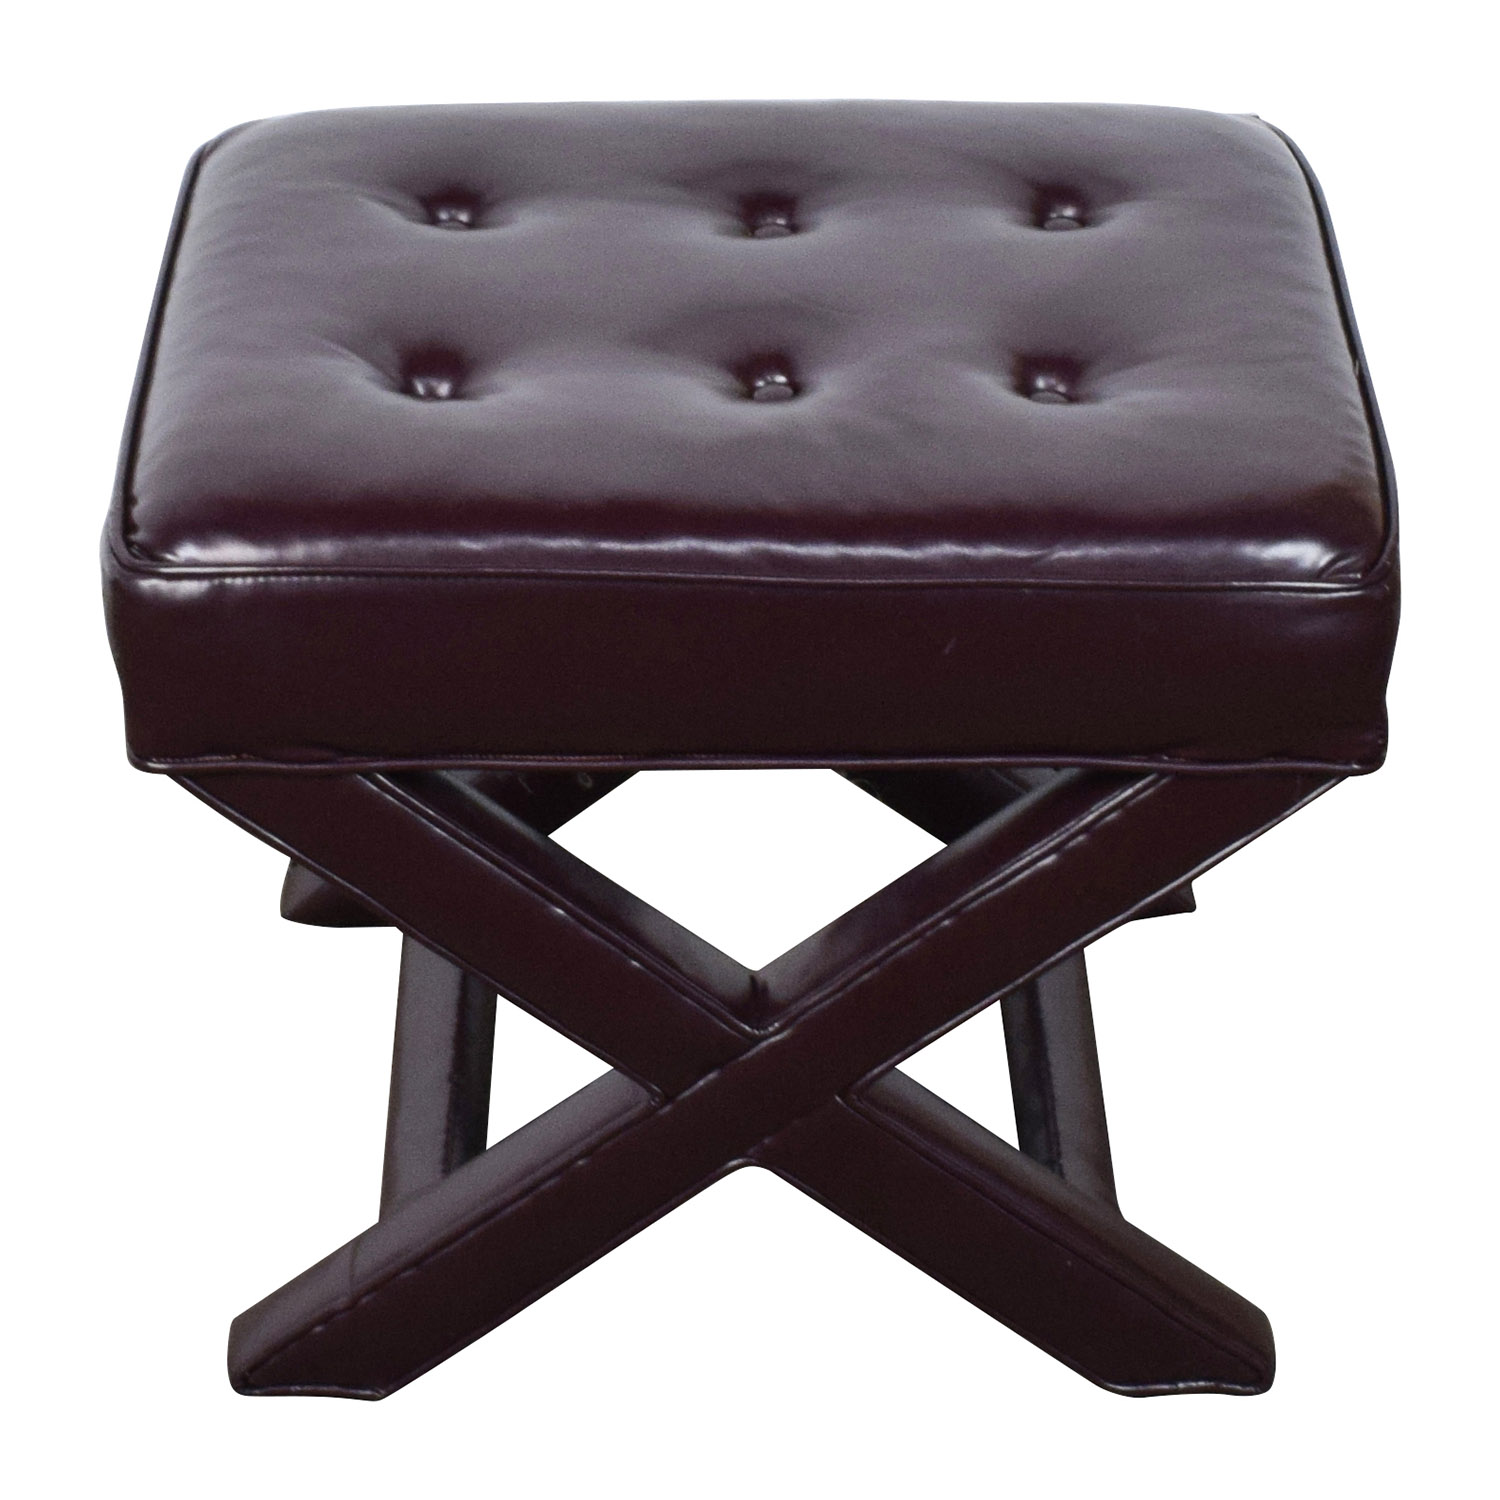 Burgundy Tufted Leather Ottoman brown